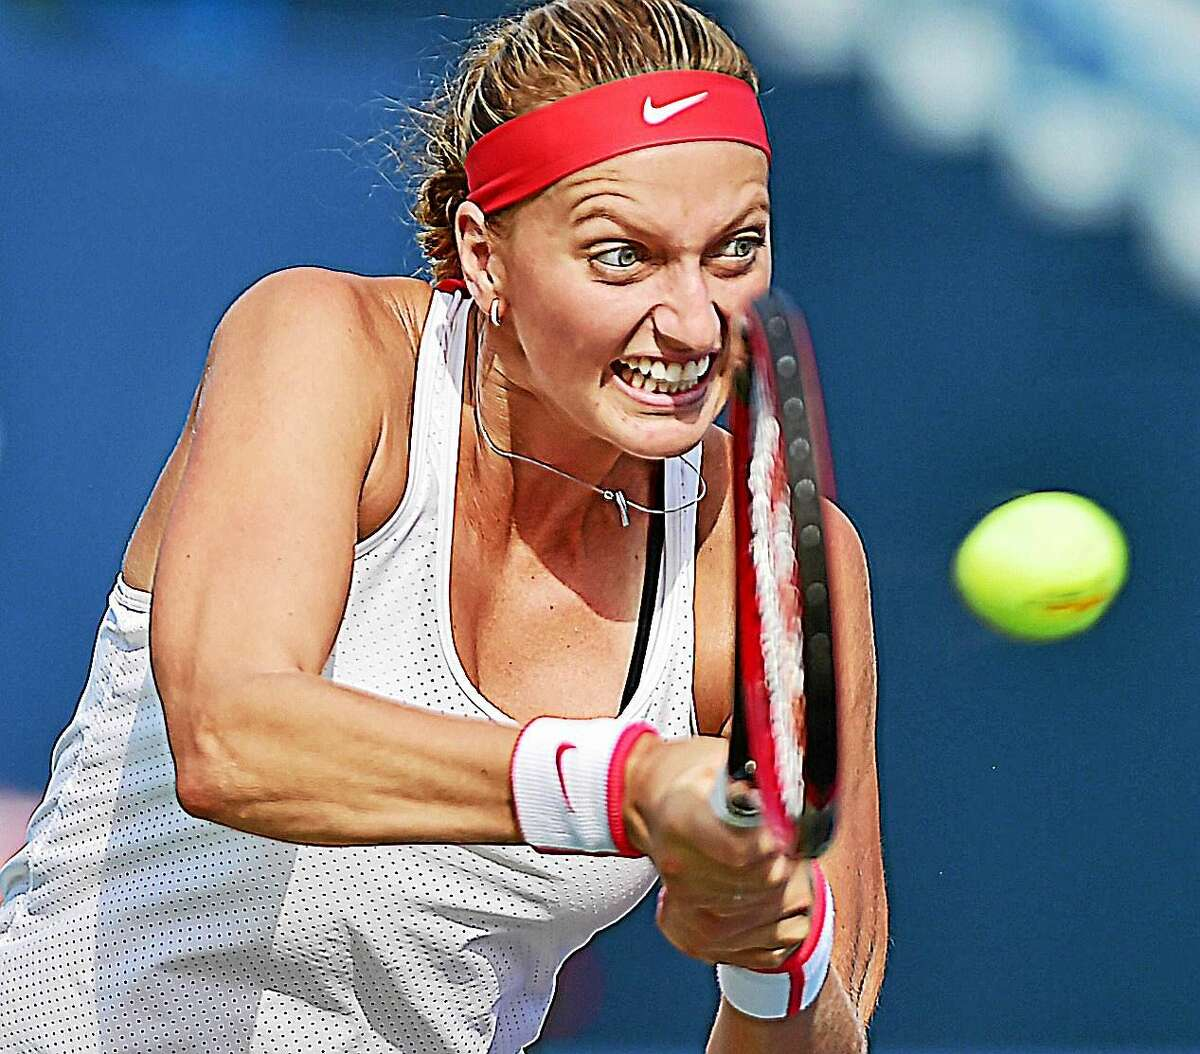 Petra Kvitova defeated Lucie Safarova in the final of the Connecticut Open on Saturday at the Connecticut Tennis Center in New Haven.